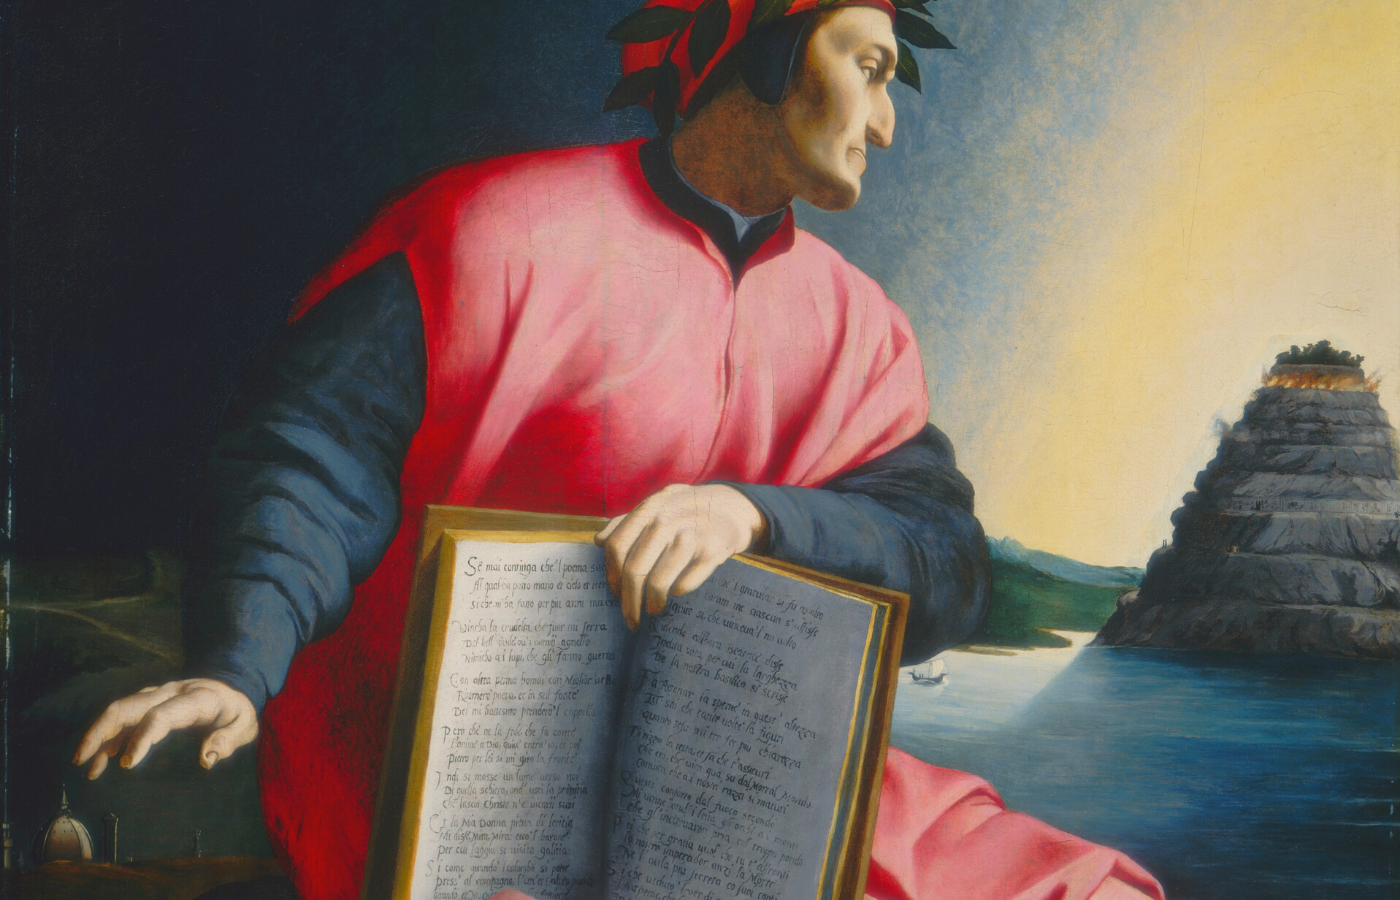 """From Devilry to Divinity: Readings in Dante's """"Divina Commedia"""" 4"""